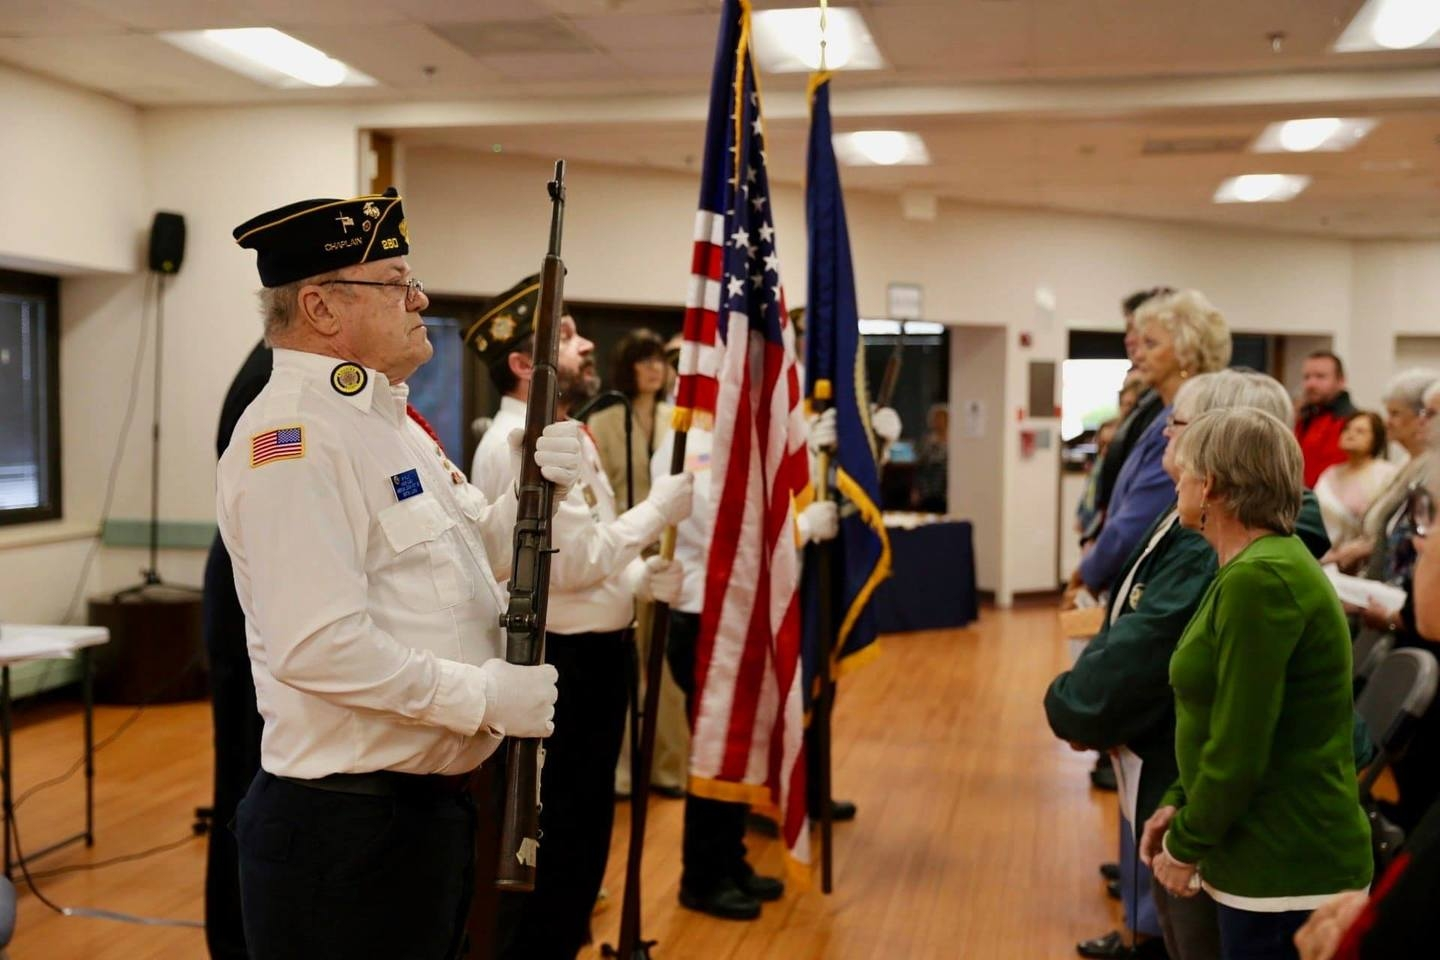 Members of the Benton American Legion Post 280/VFW Post 2671 Honor Guard were invited to participate in the Last Call Ceremony held at the Marion VA Hospital's Community Living Center. Our Honor Guard had the honor of posting the Colors for this hallowed event which honors the Veteran's who had passed during the last few months.